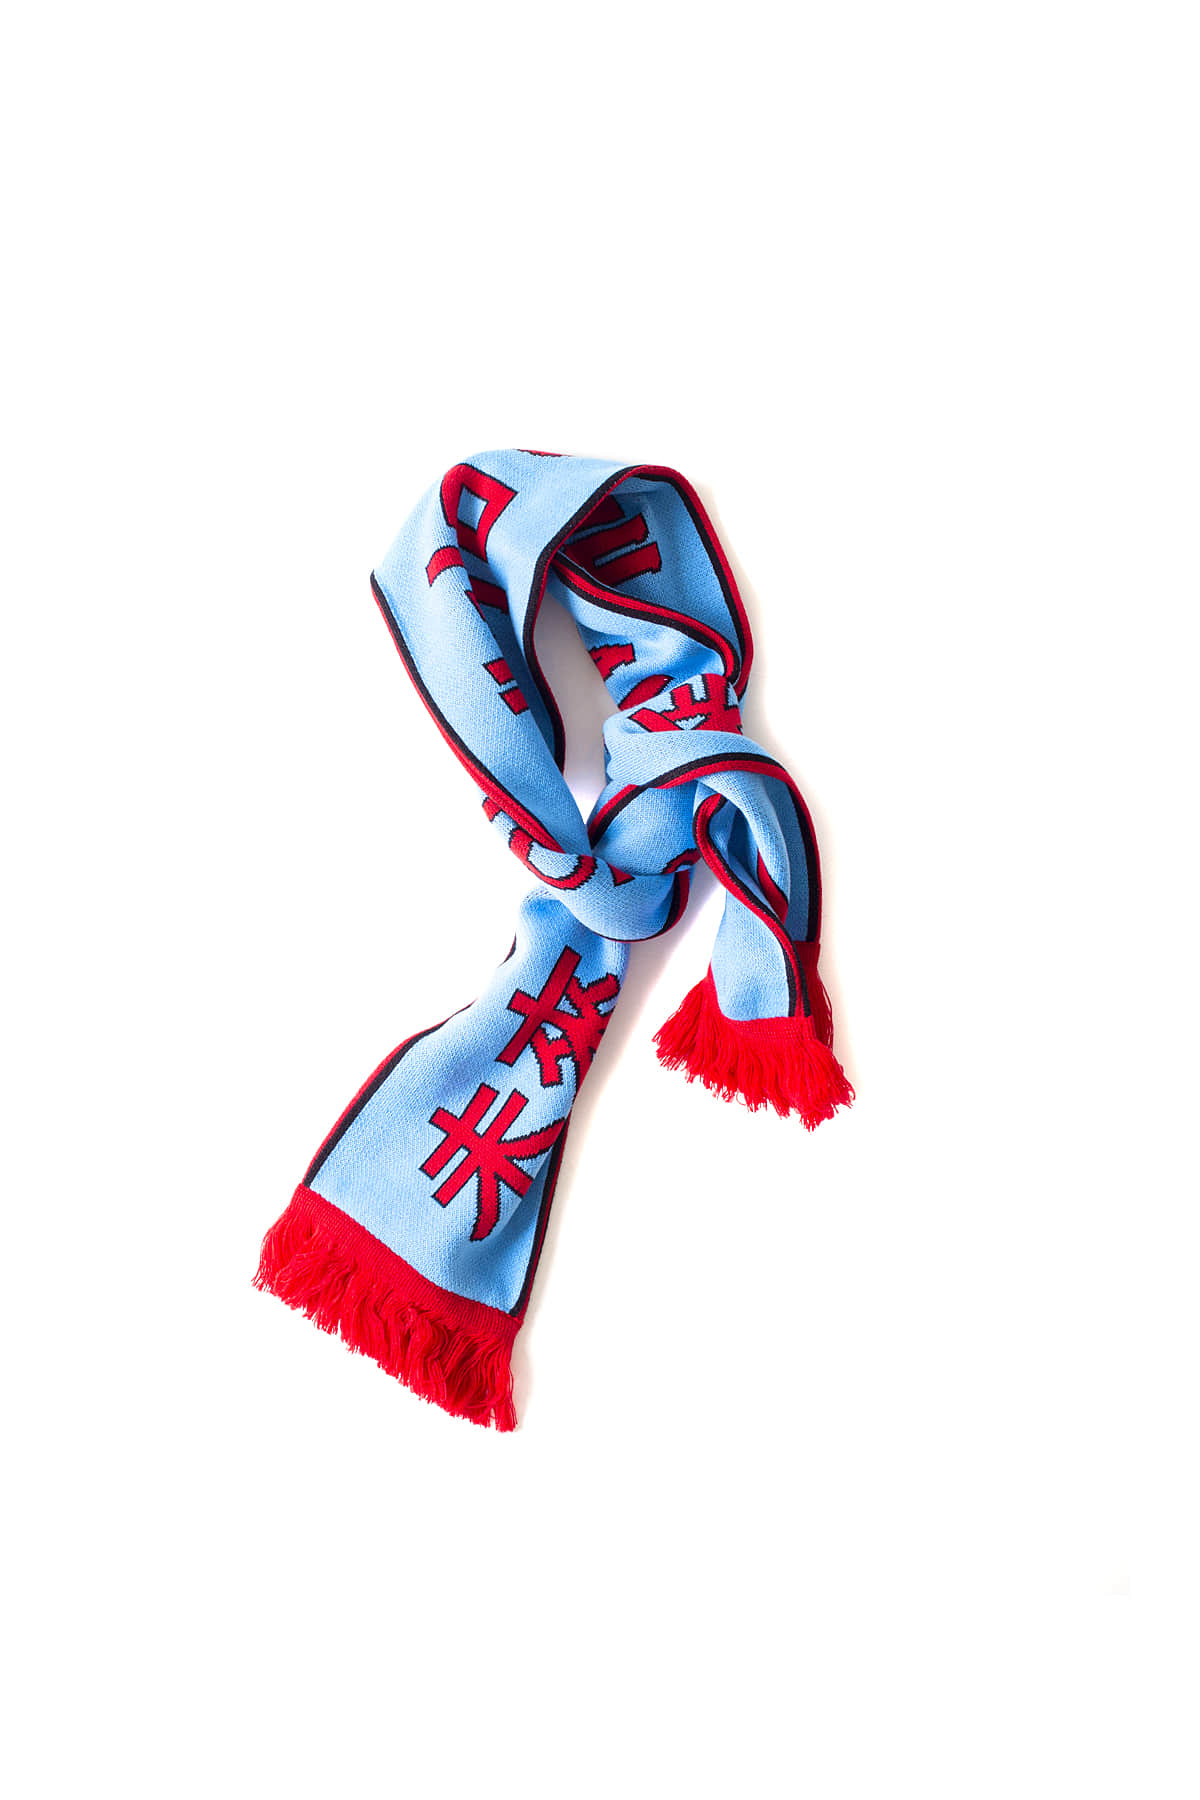 USED FUTURE : Future Scarf (Blue)